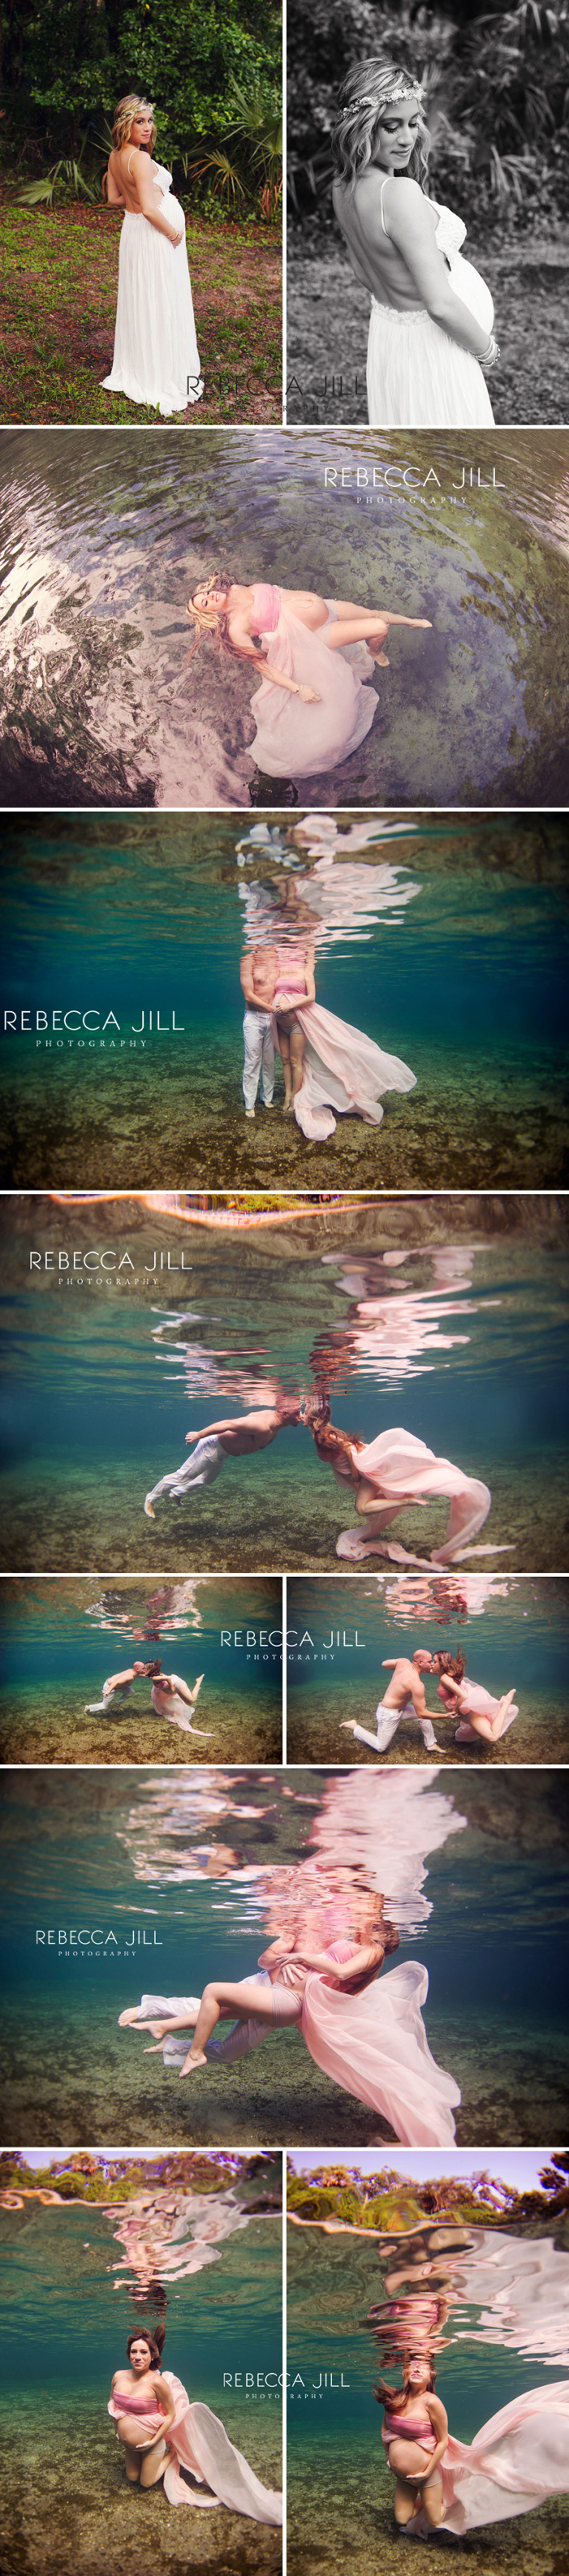 Central Florida Underwater Maternity Photographer